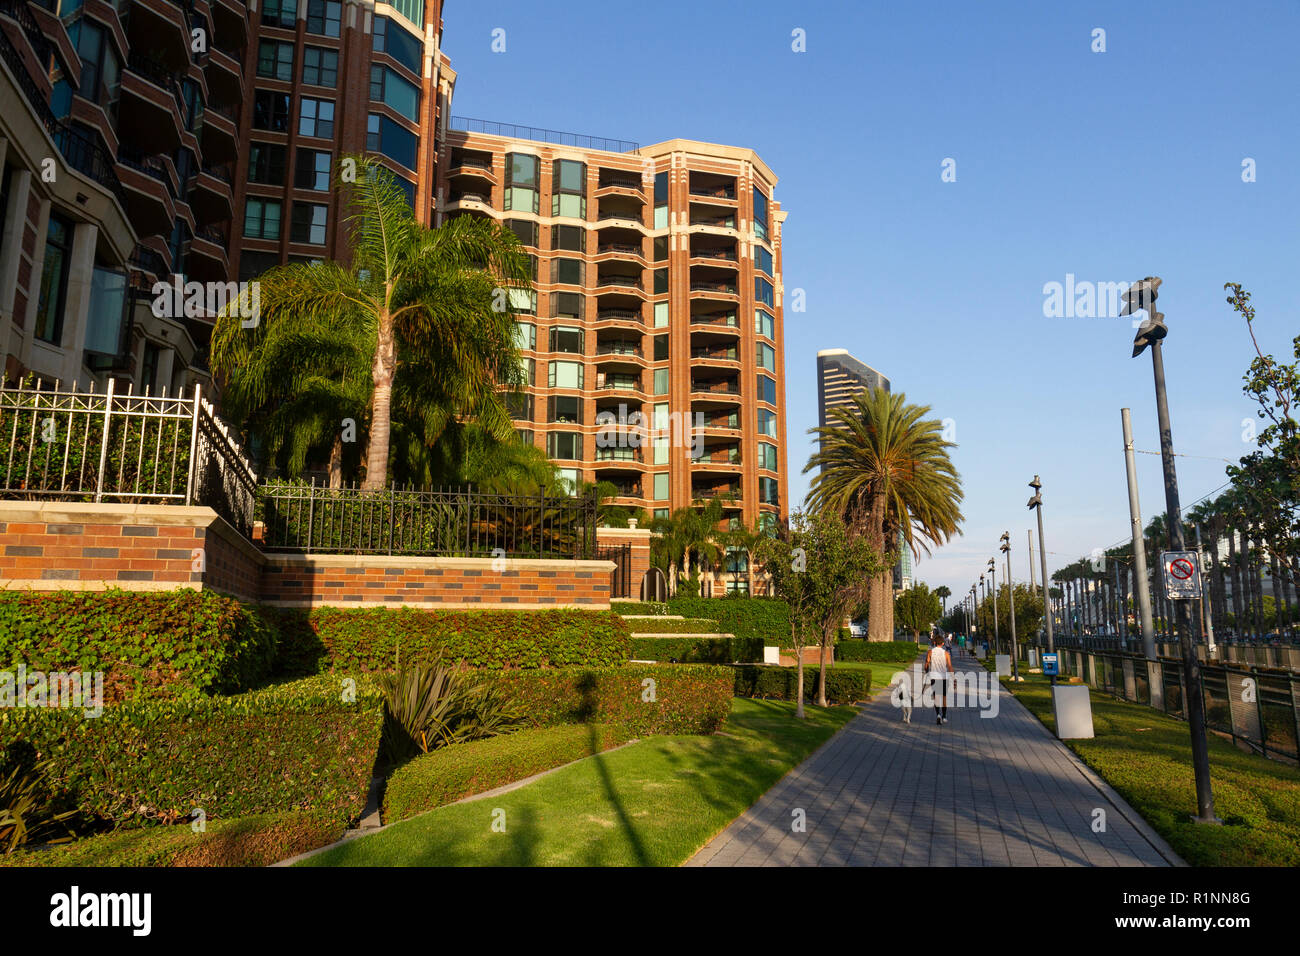 CityFront Terrace condominiums on Martin Luther King, Jr. Promenade  in downtown San Diego, California, United States. - Stock Image